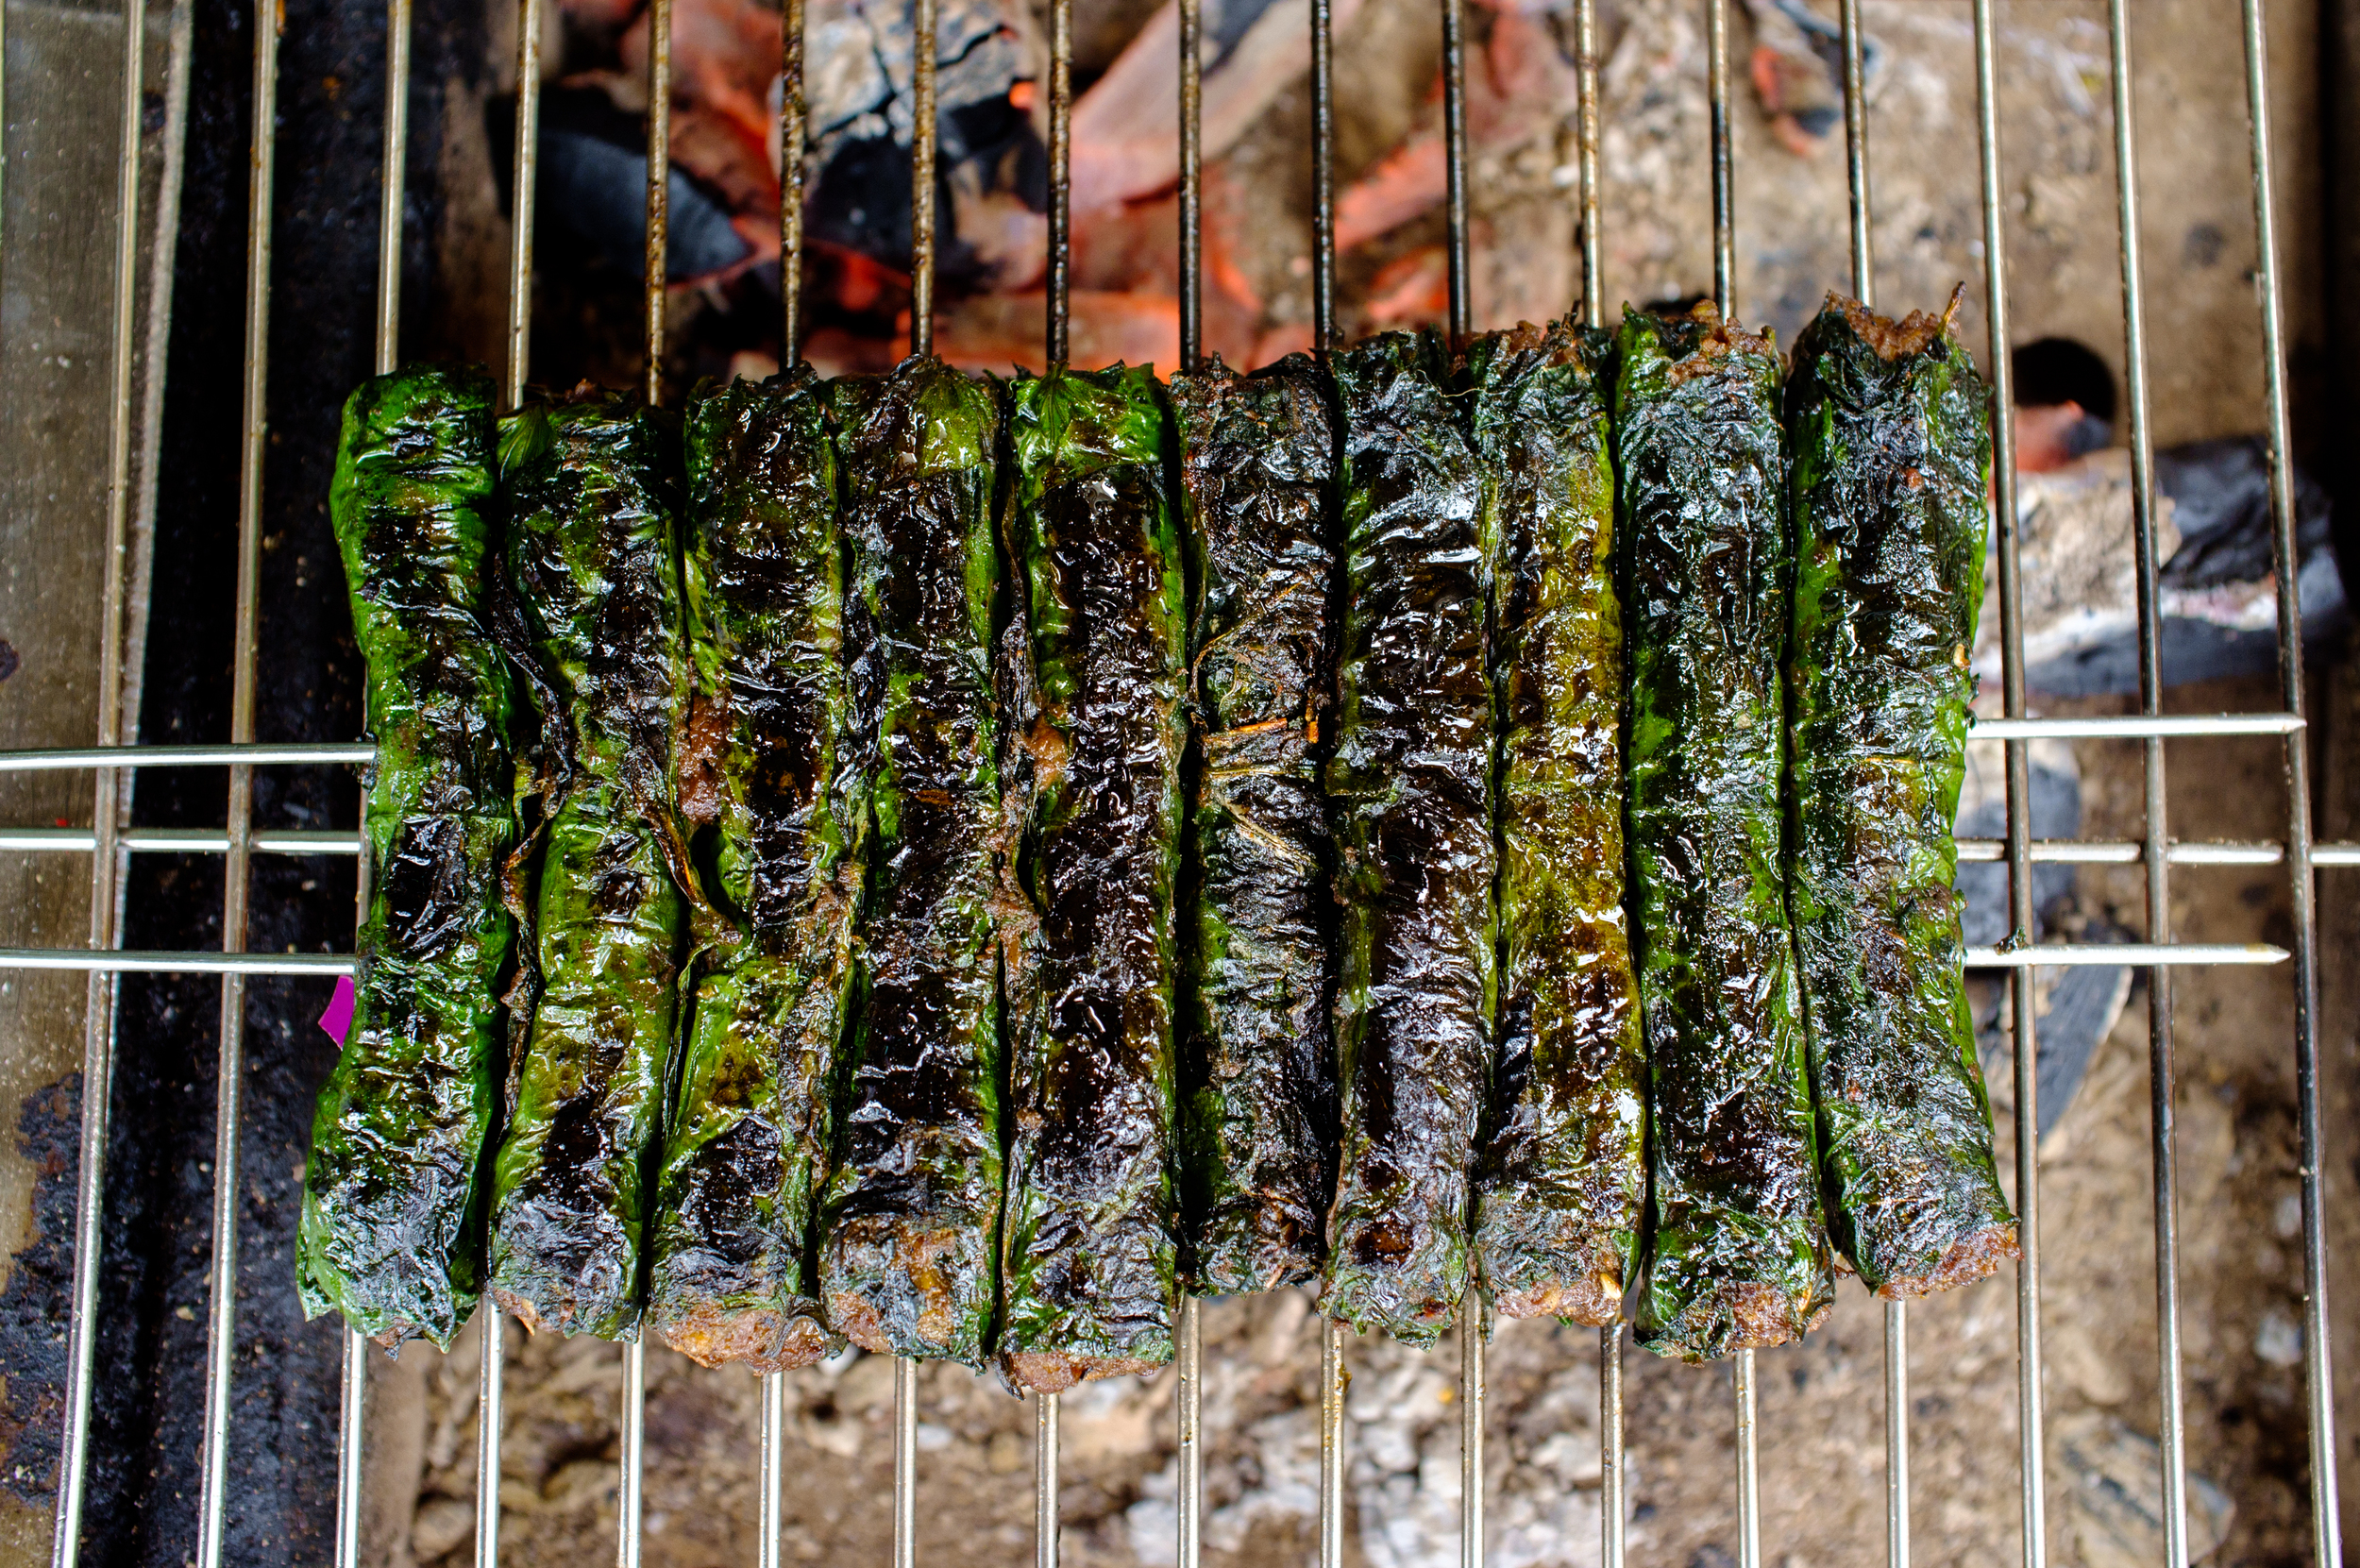 Bò lá lốt  on the grill